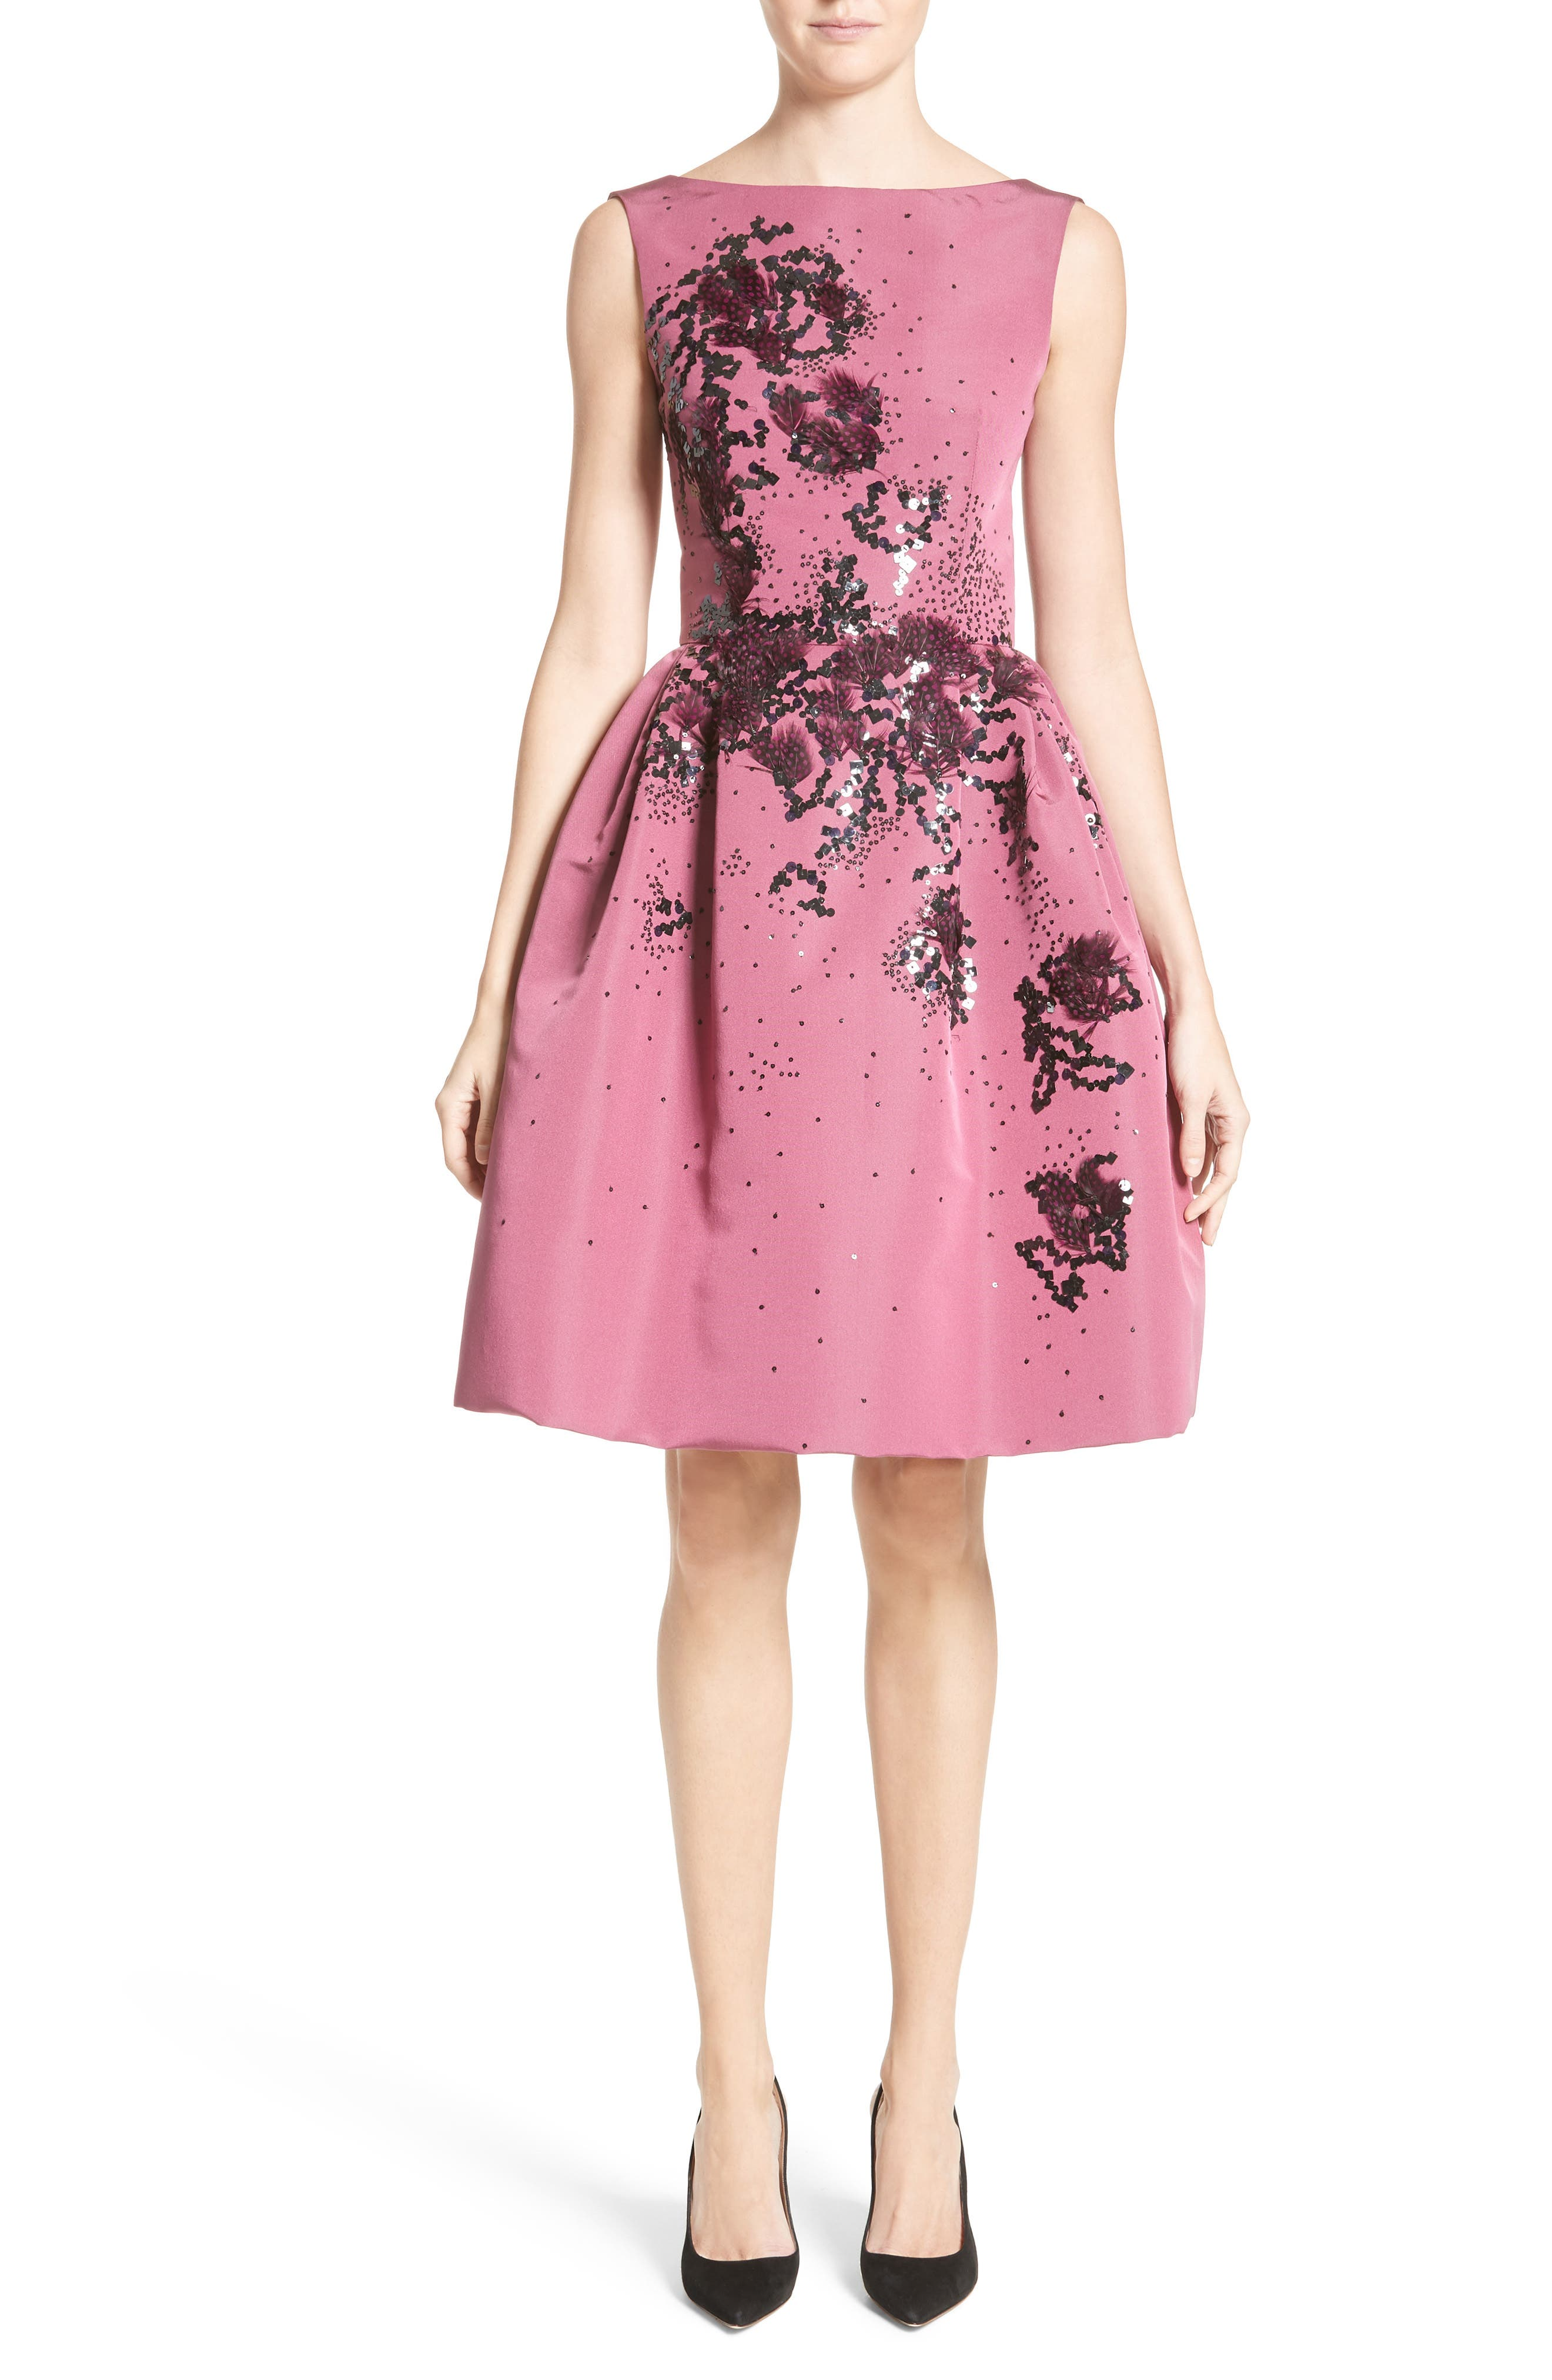 Alternate Image 1 Selected - Carolina Herrera Embellished Silk Faille Dress